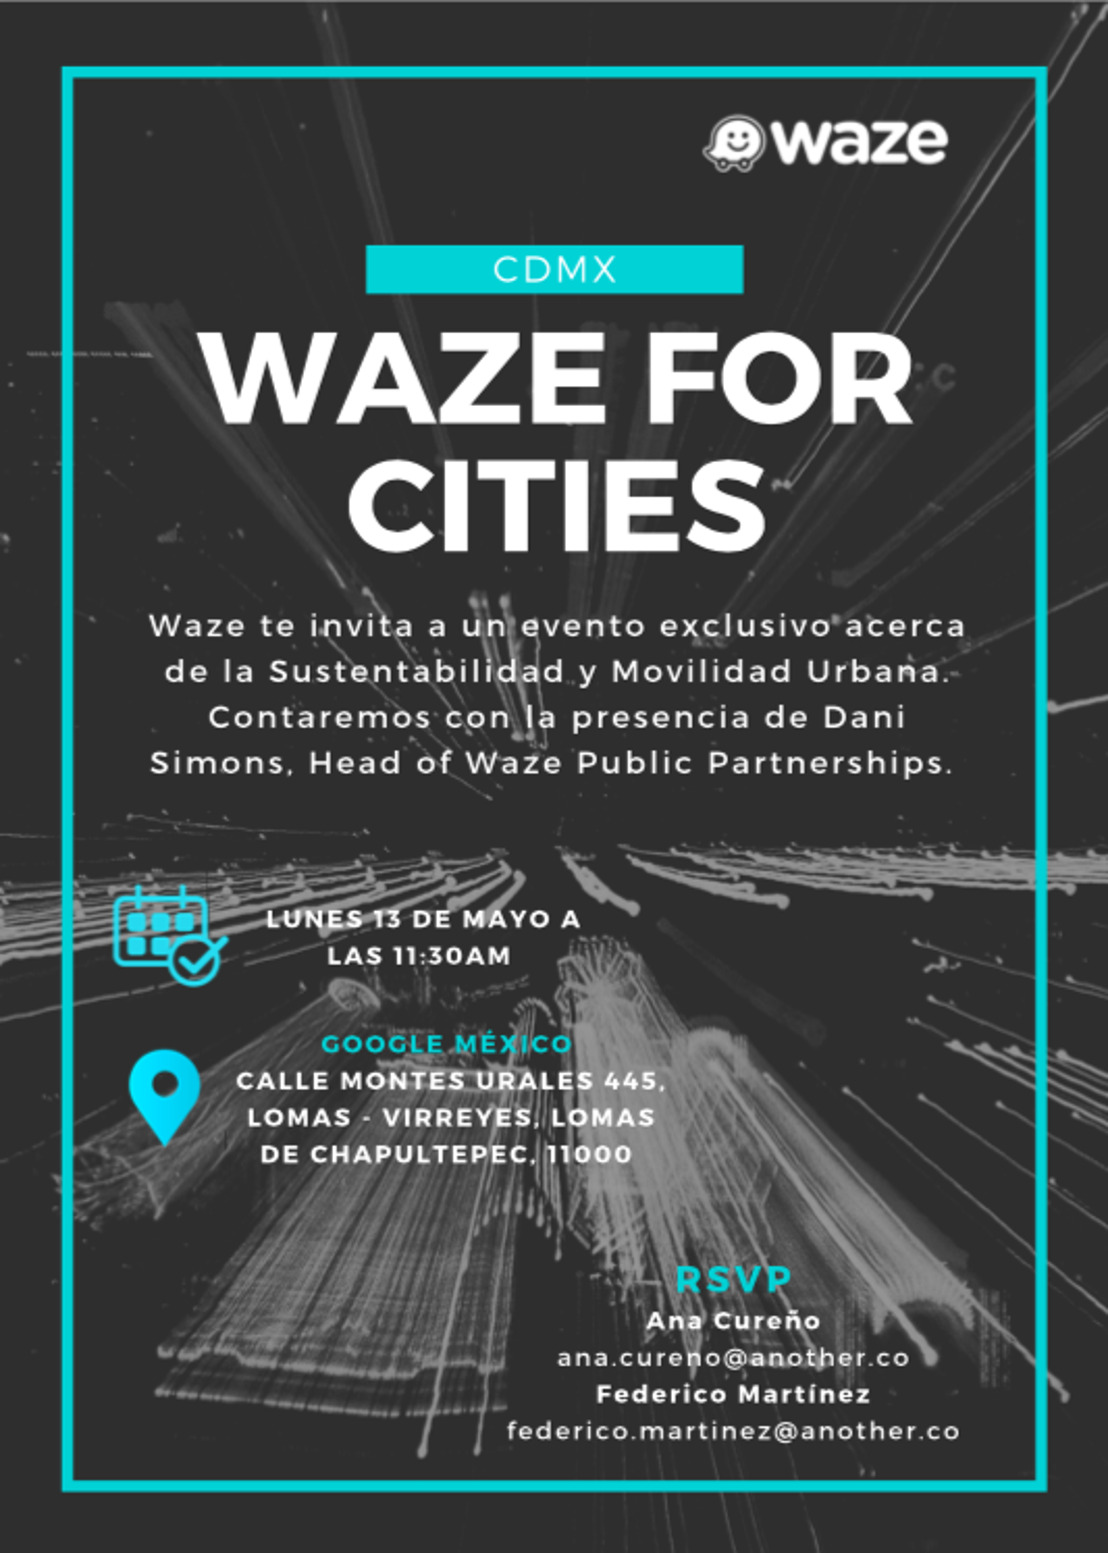 WAZE FOR CITIES, Sustentabilidad y Movilidad Urbana